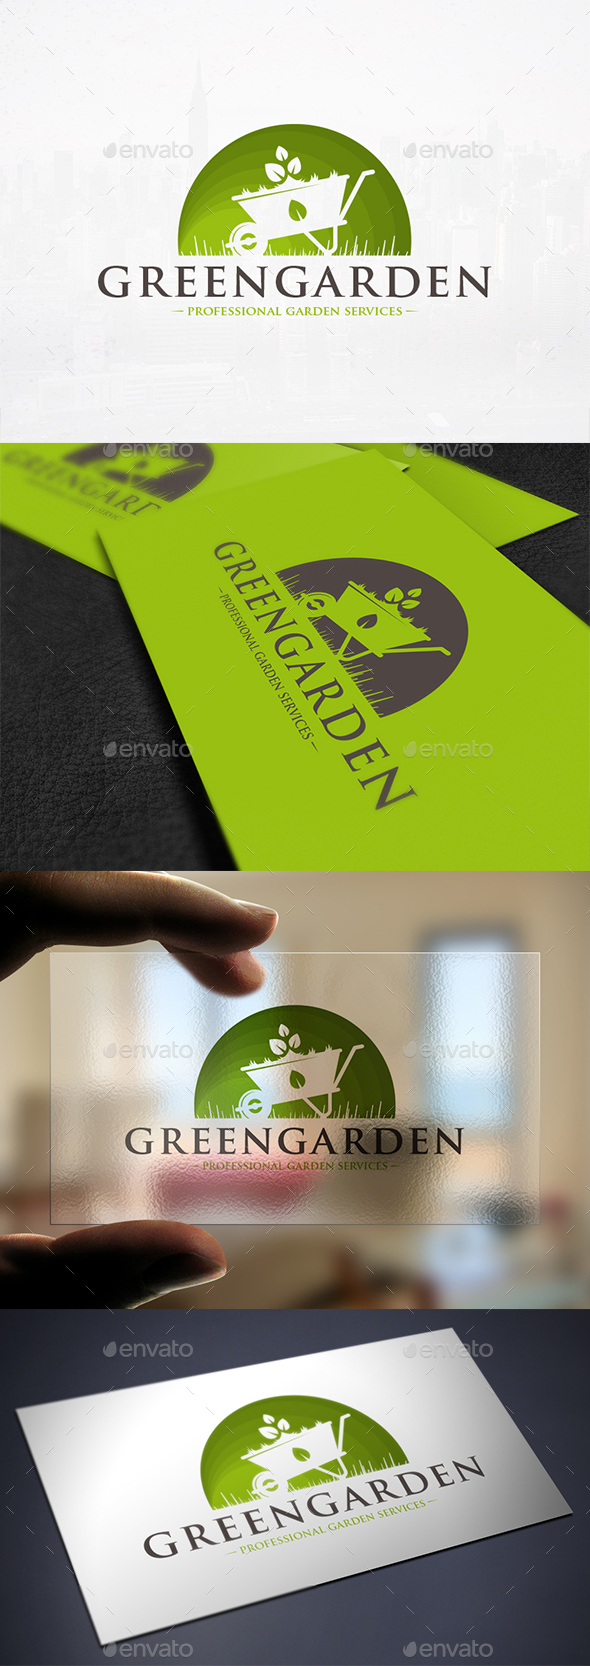 Green Garden Logo Template - Nature Logo Templates